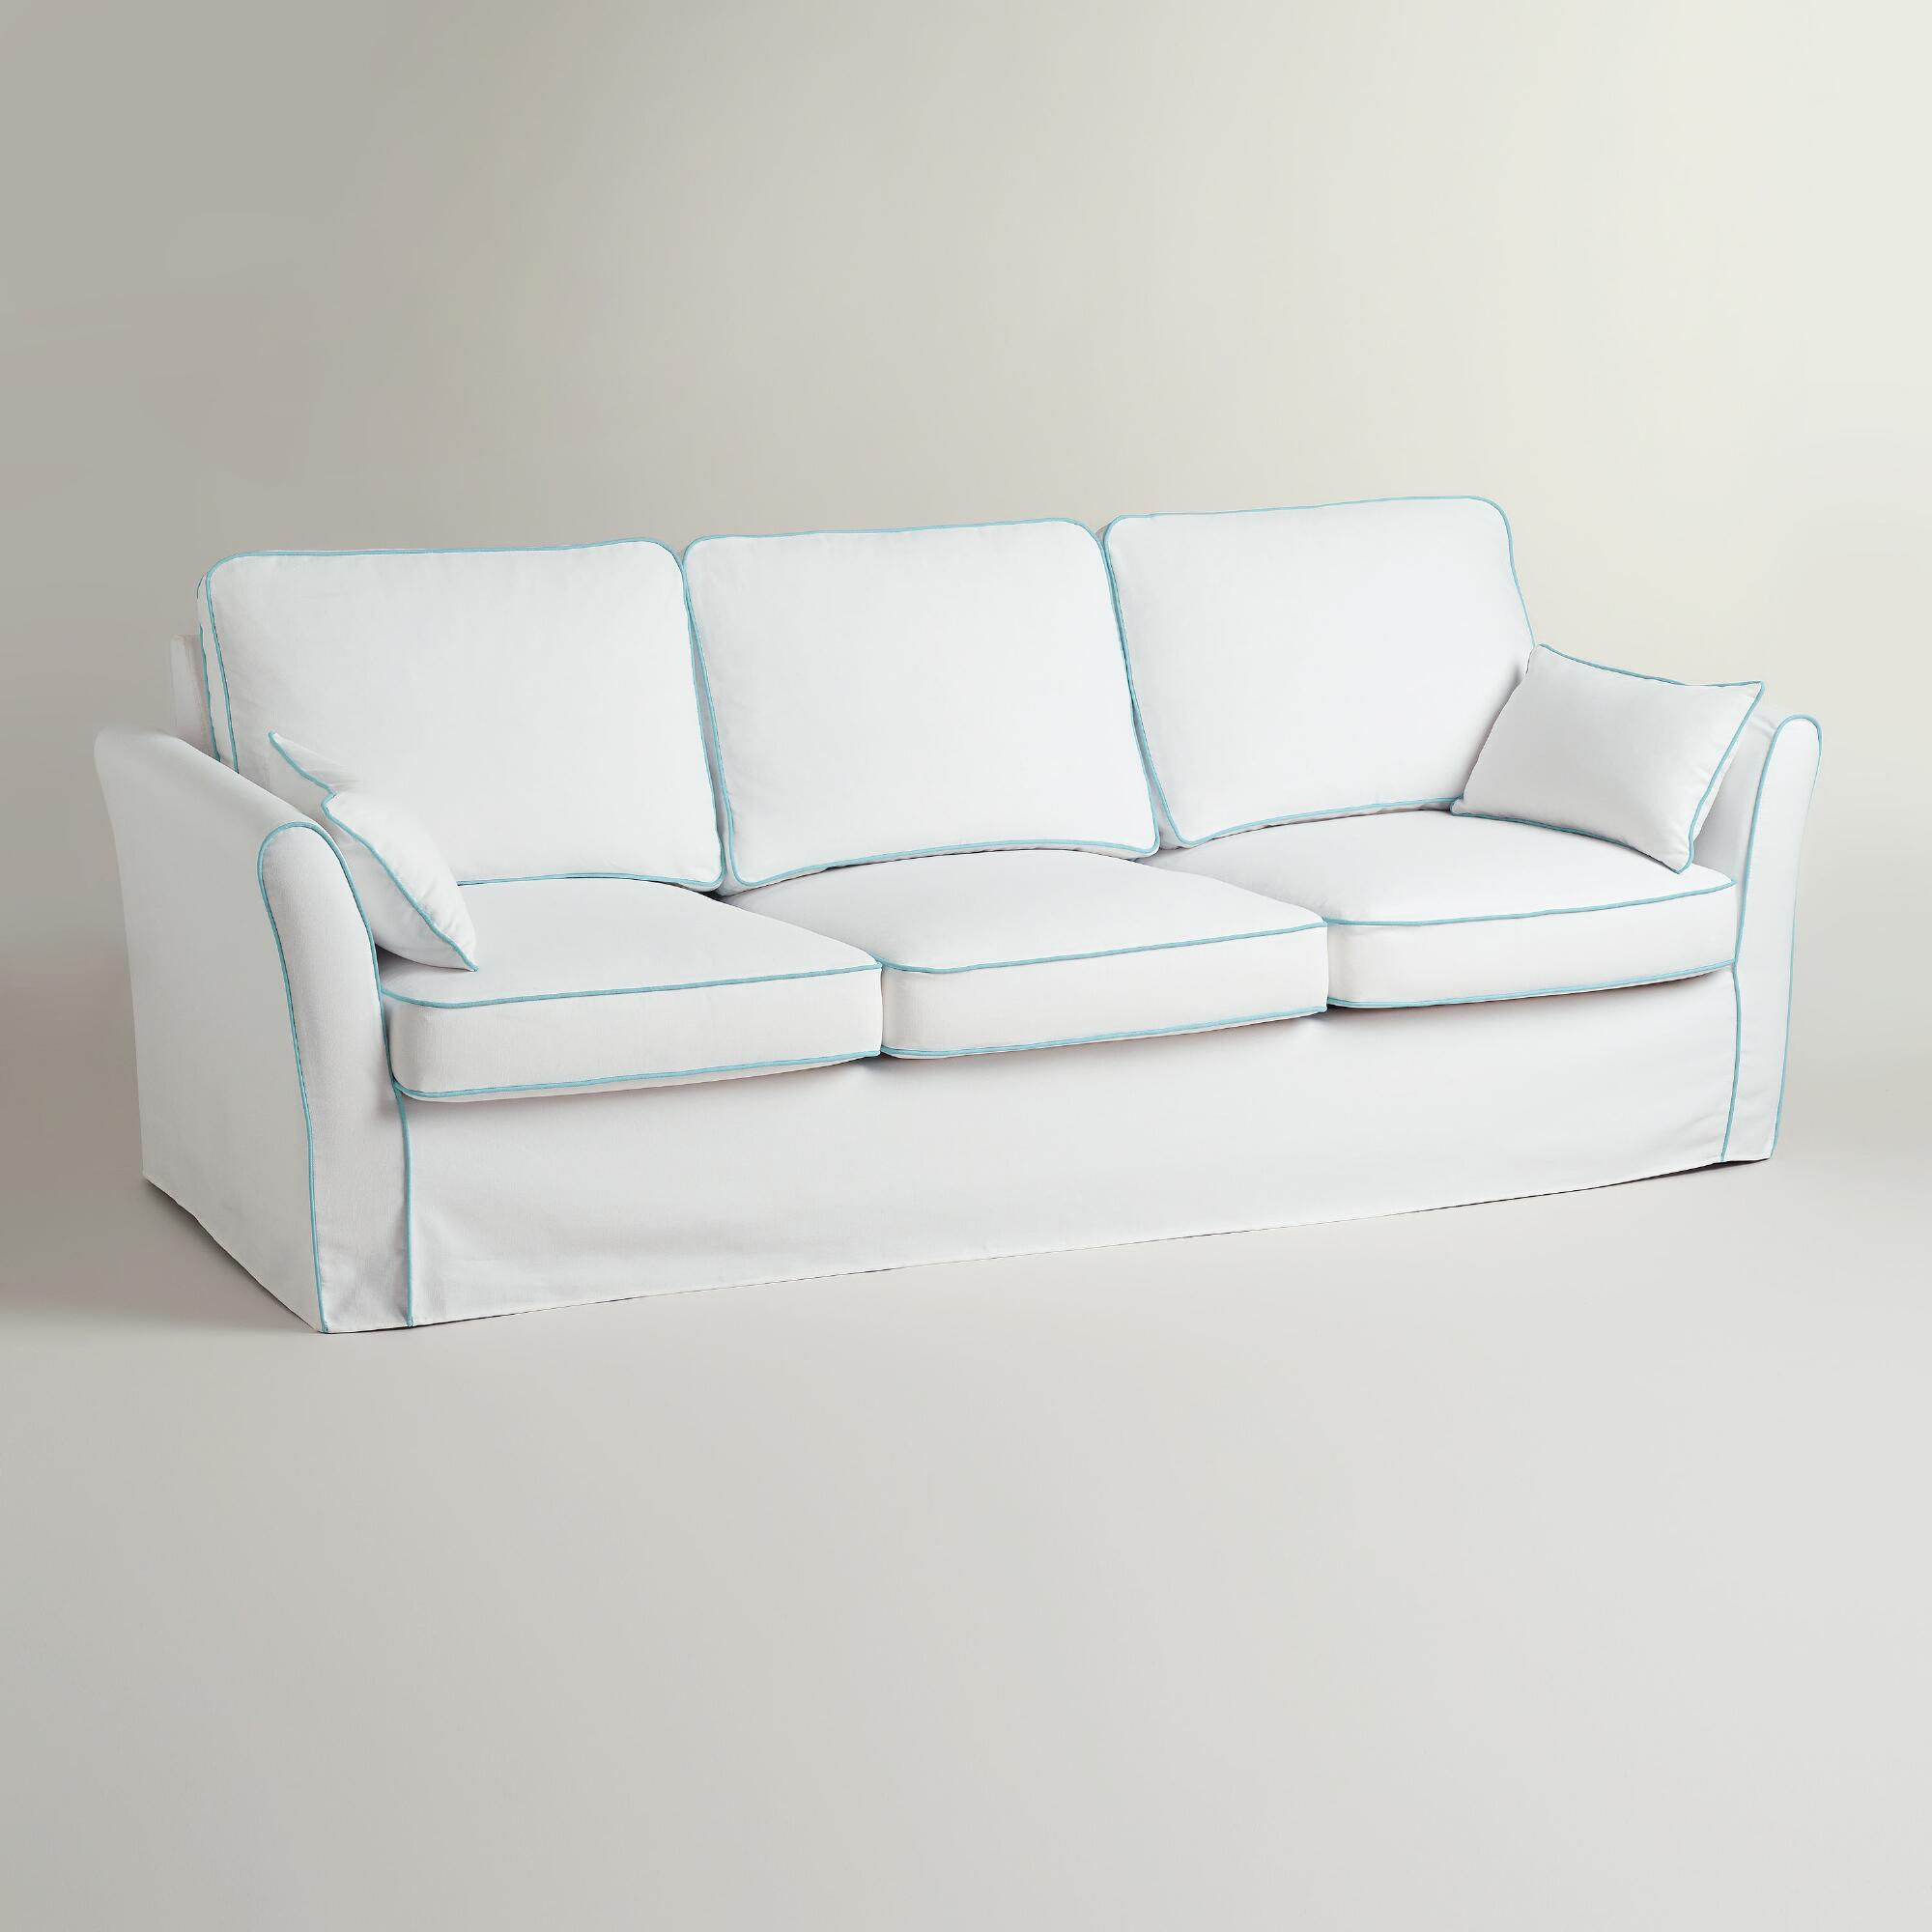 White and blue luxe 3 seat sofa slipcover world market Blue loveseat slipcover